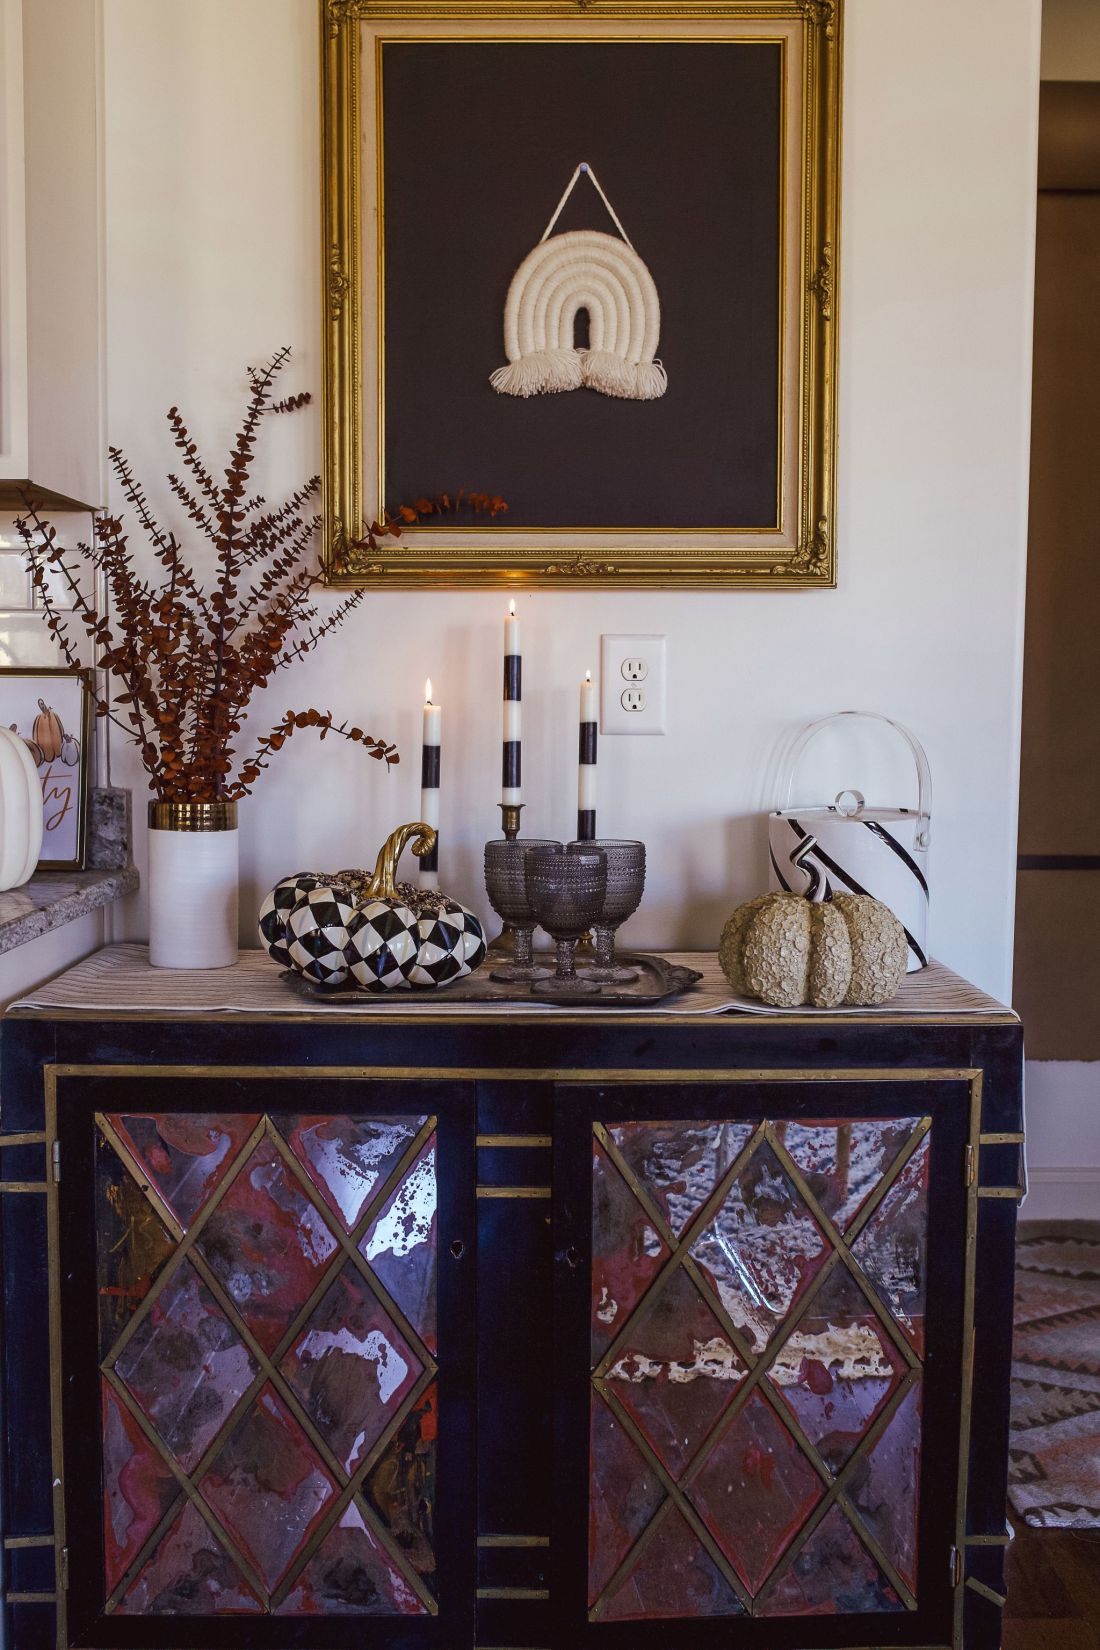 Christmas Tablescape Ideas by popular Nashville life and style blog, Modern Day Moguls: image of a end table decorated with a Mackenzie-Childs ceramic black and white pumpkin, black and white stripe candlesticks, and black hobnail glasses.